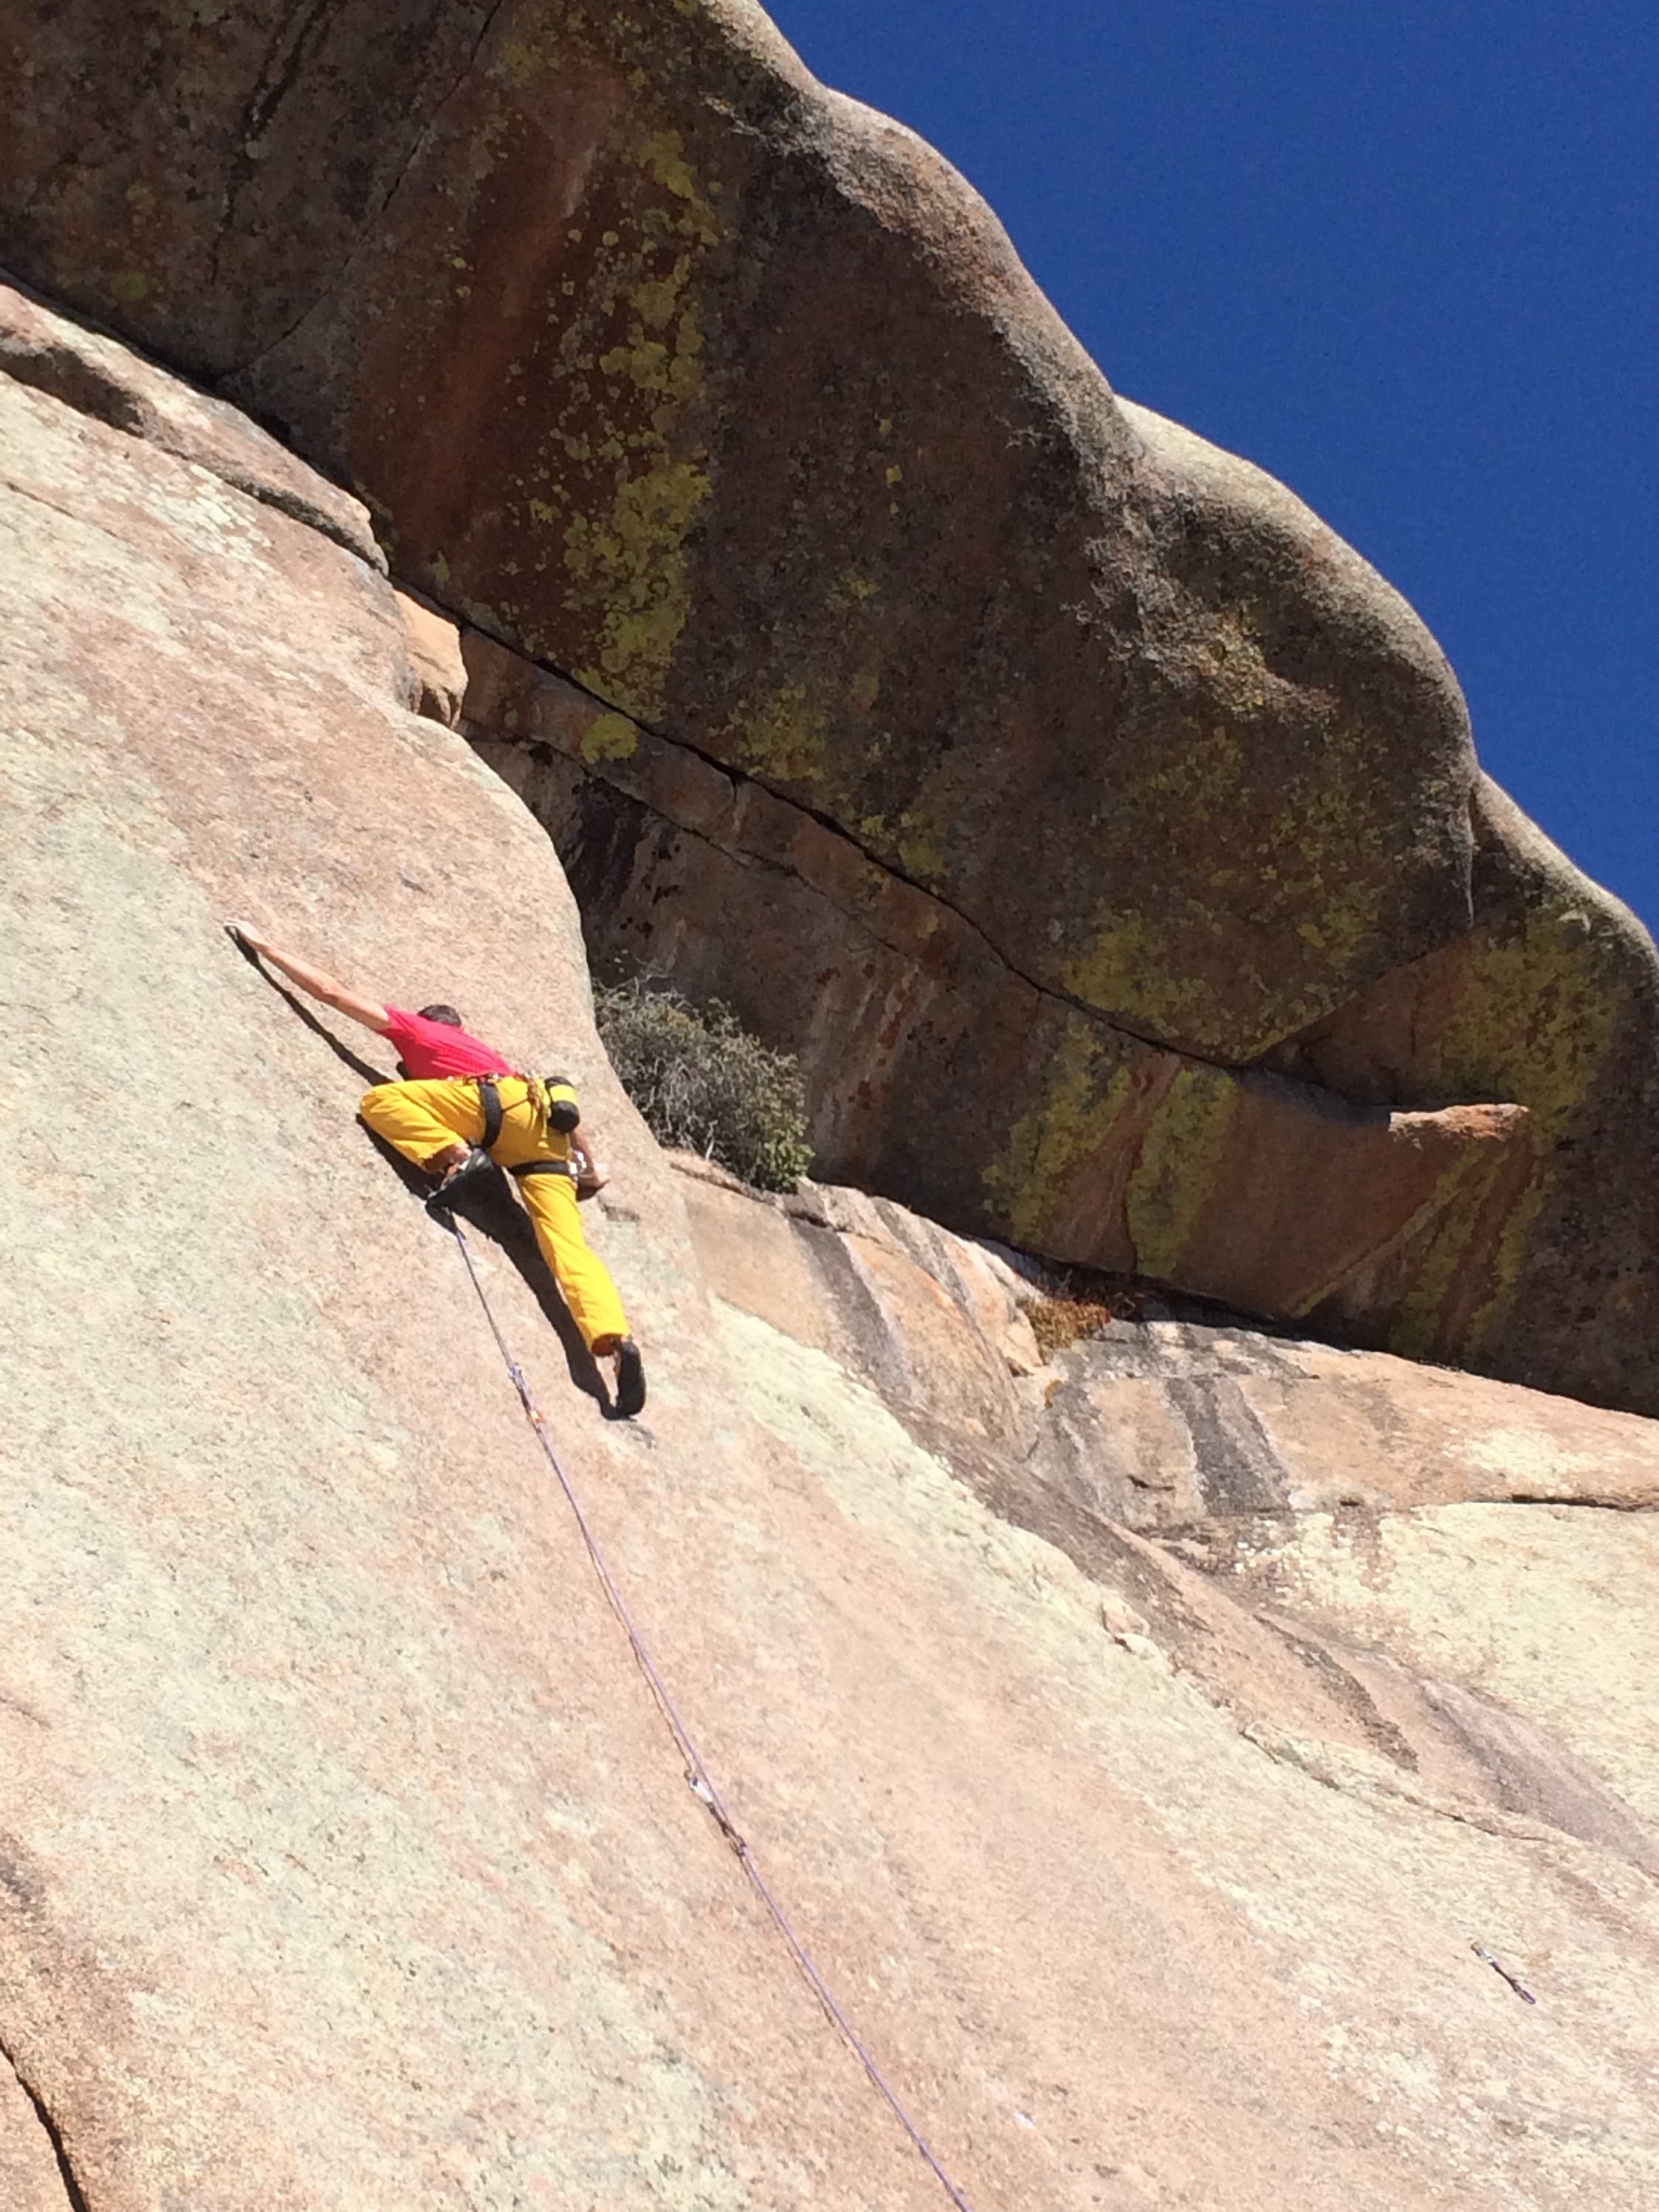 Mike Lewis delicately edges up a steep slab route called Sport (5.10d) in Vedauwoo, Wyoming. [Photo] Lodi Siefer